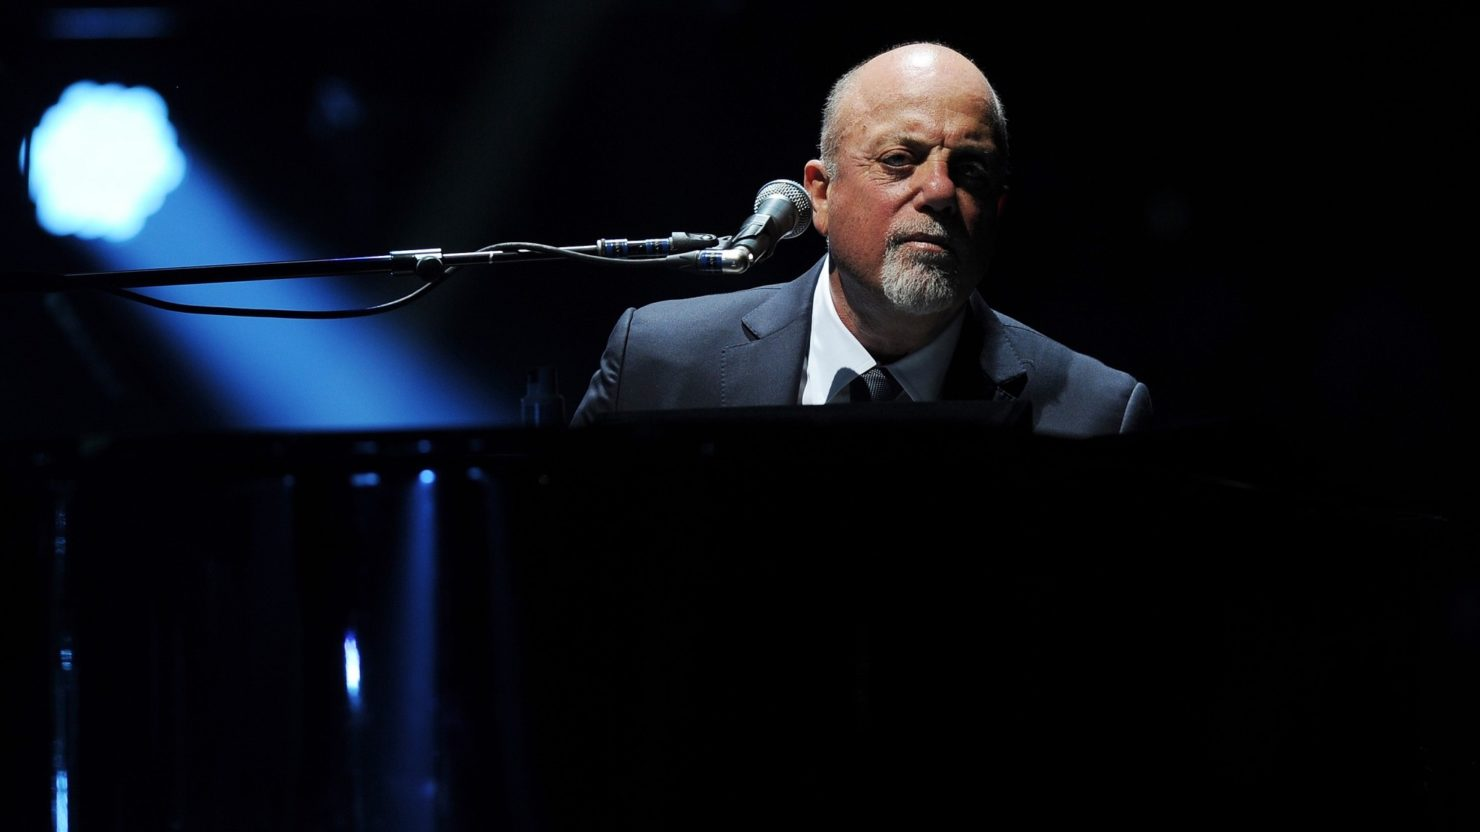 Billy Joel Welcomes Paul Simon Miley Cyrus At Madison Square Garden